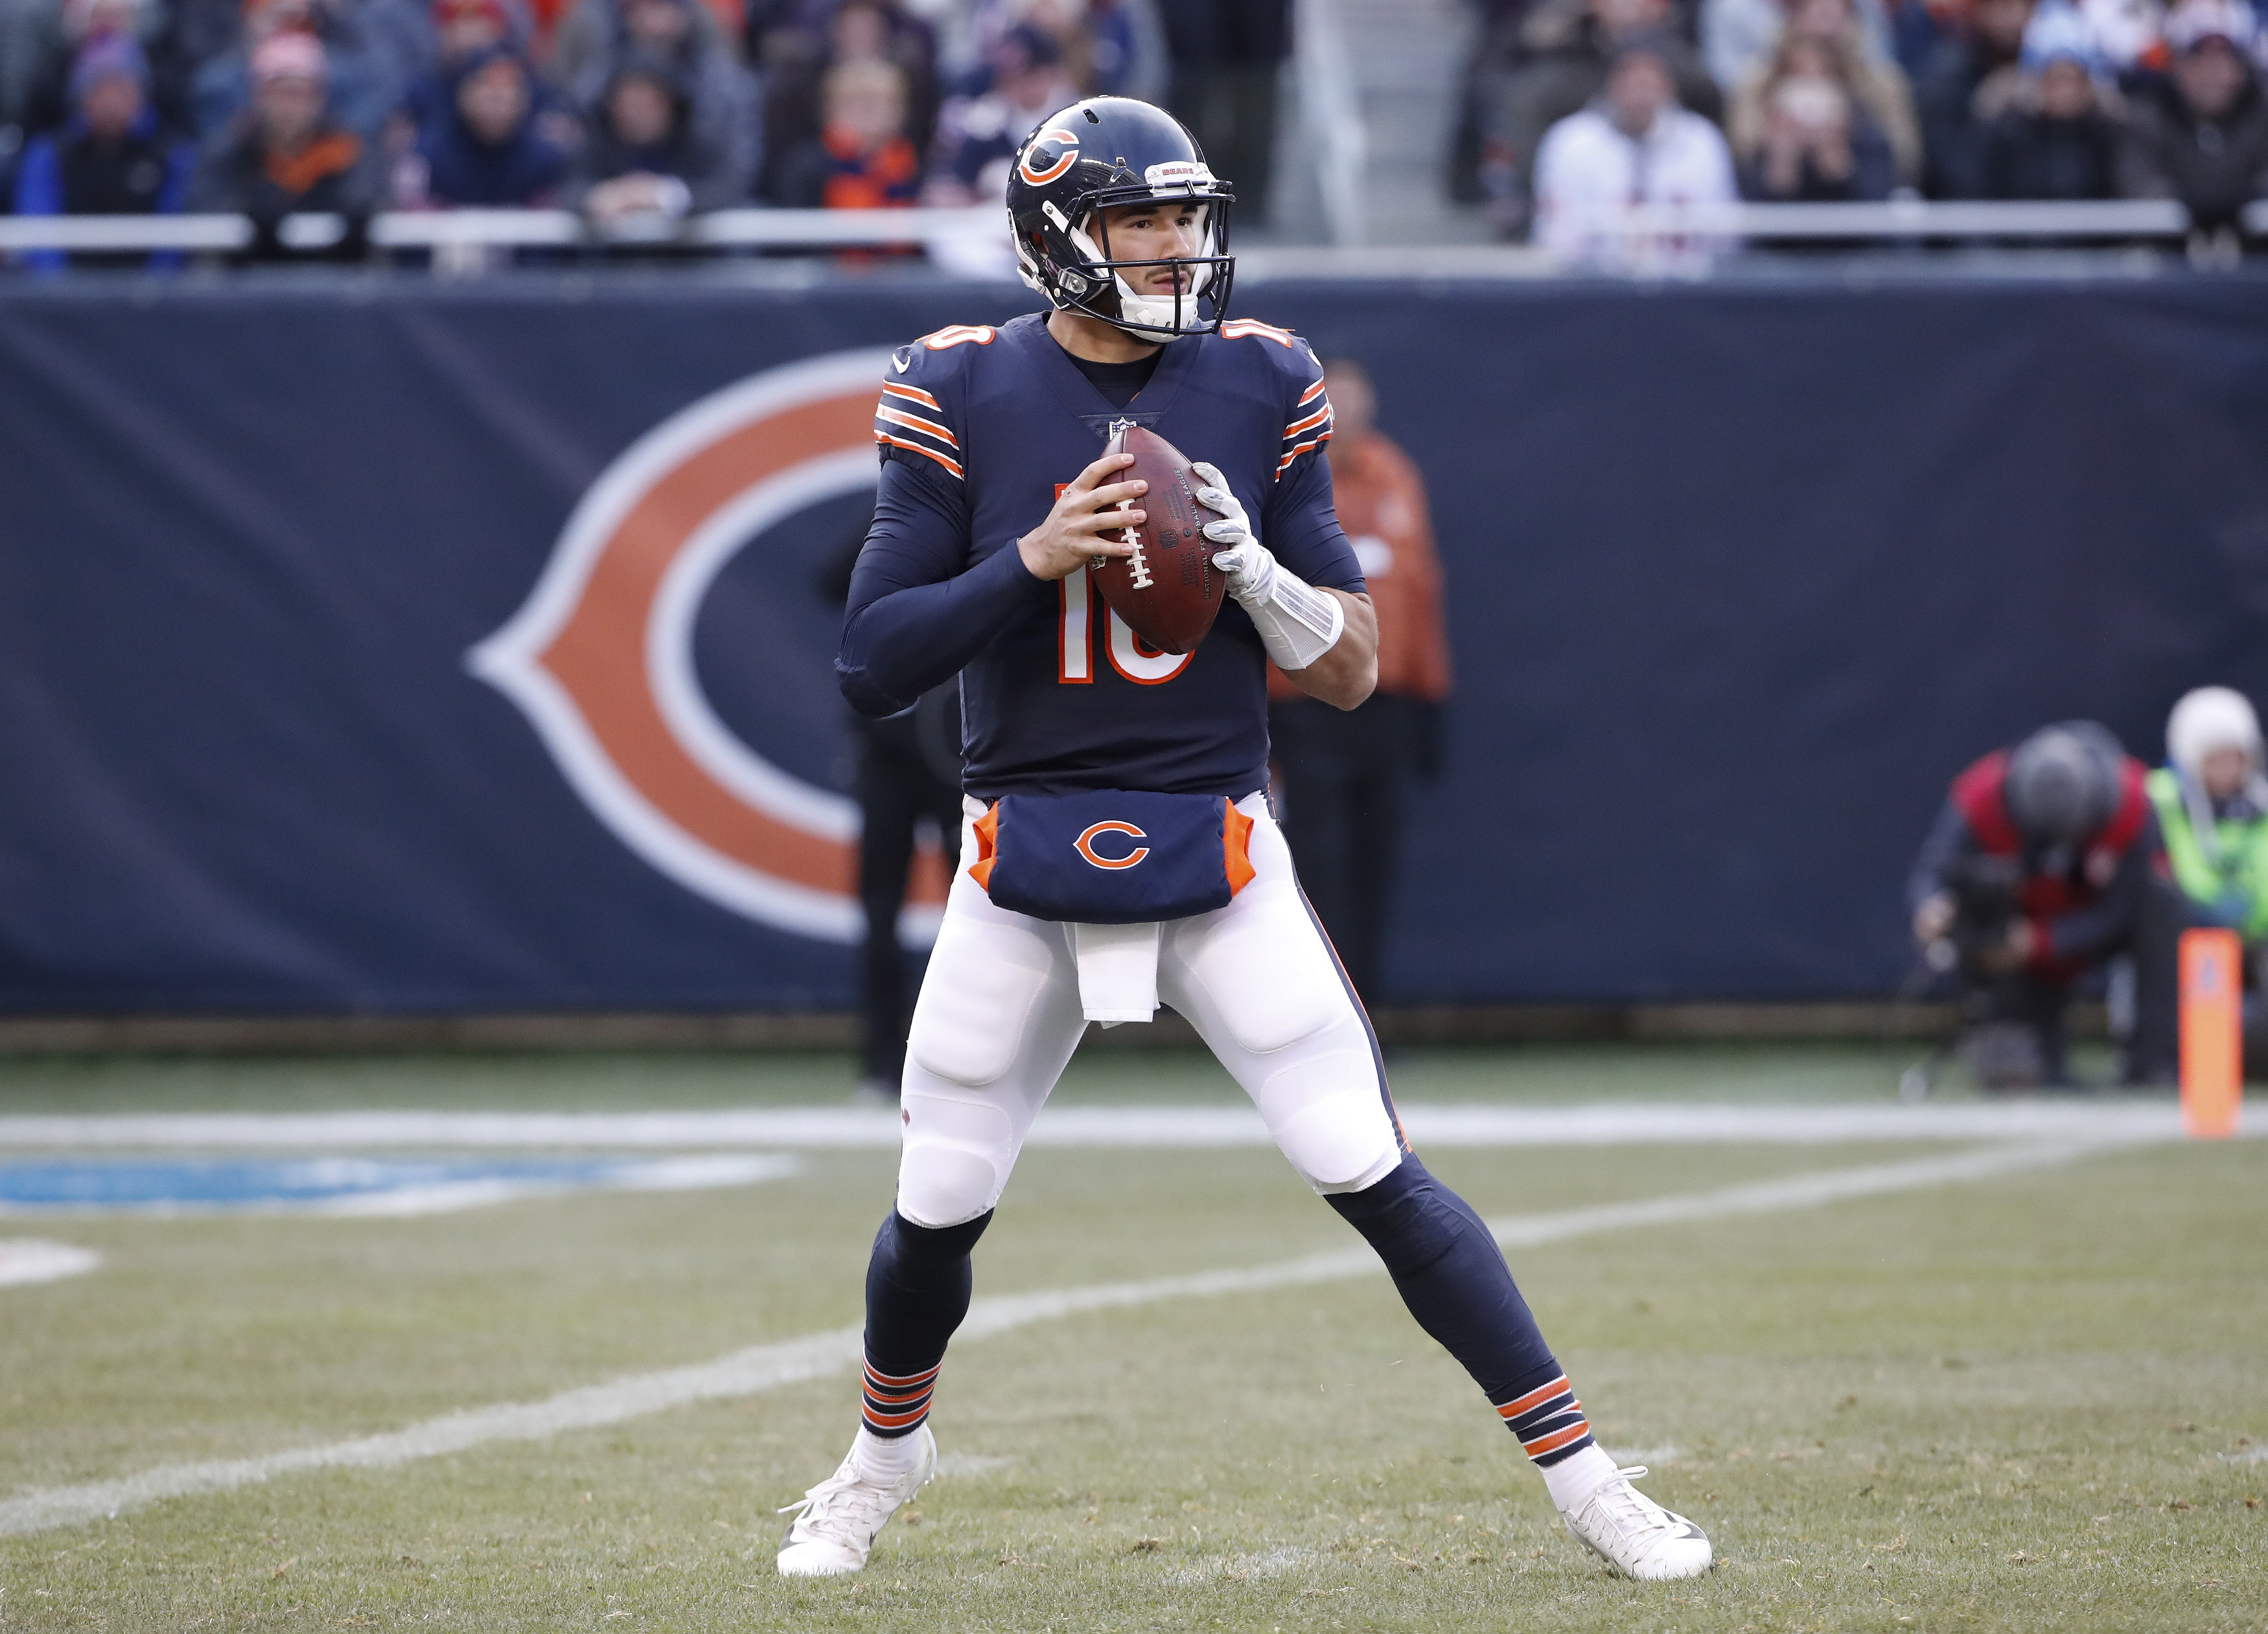 NFL Week 10 Sunday Standouts: Offense